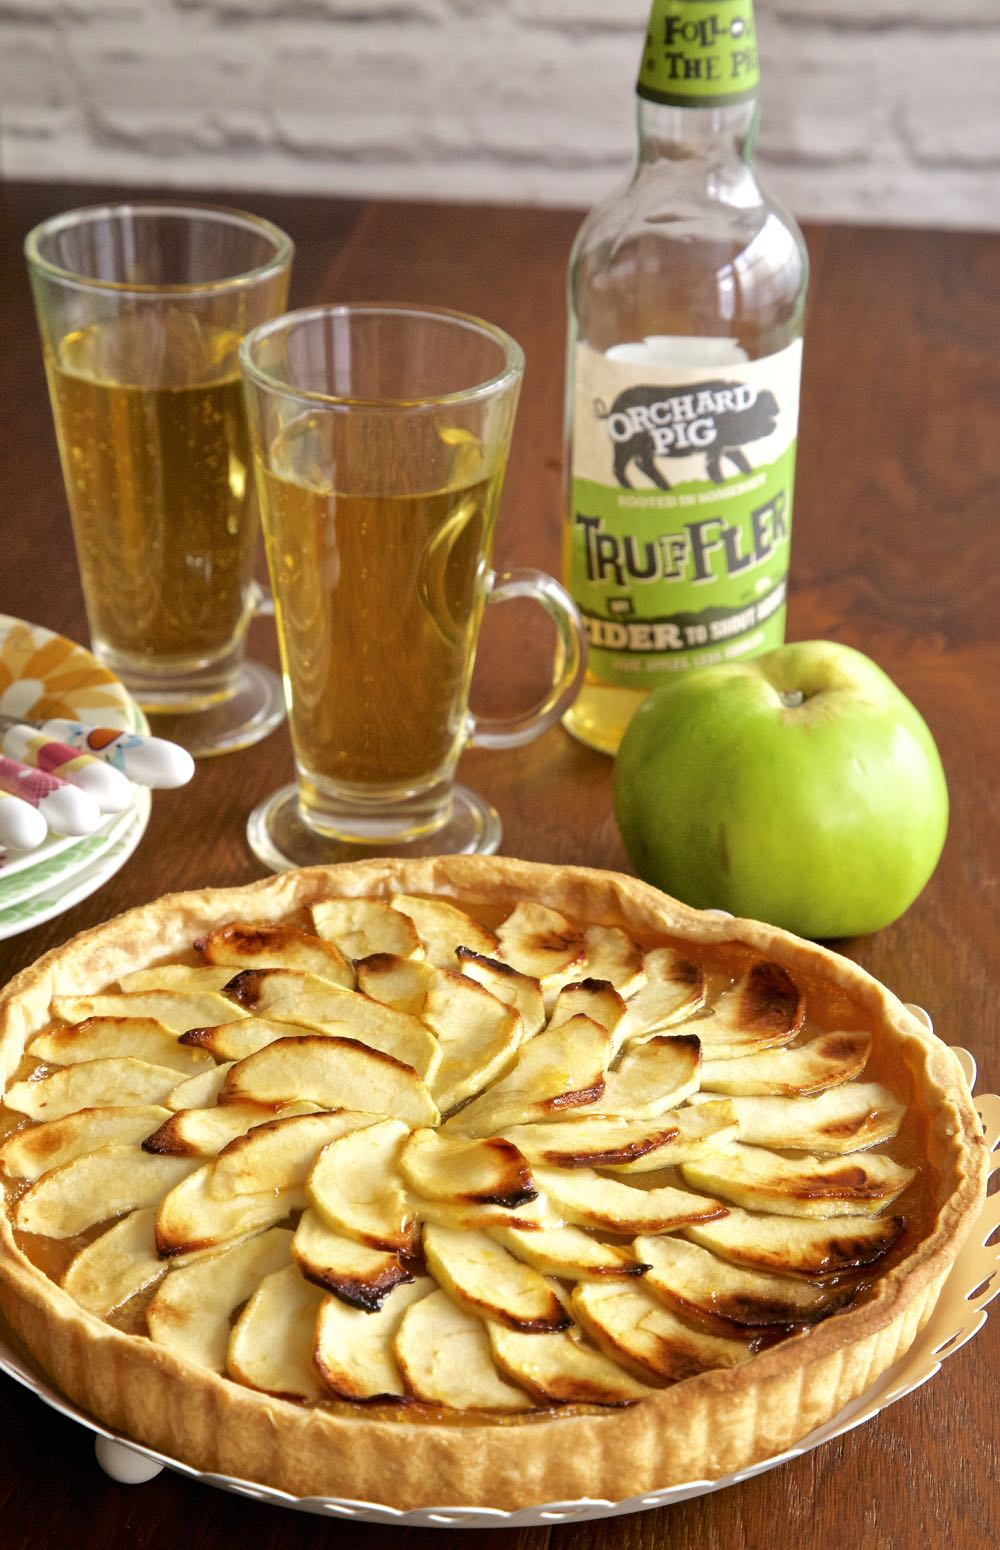 Rustic Cider and Apple Tart